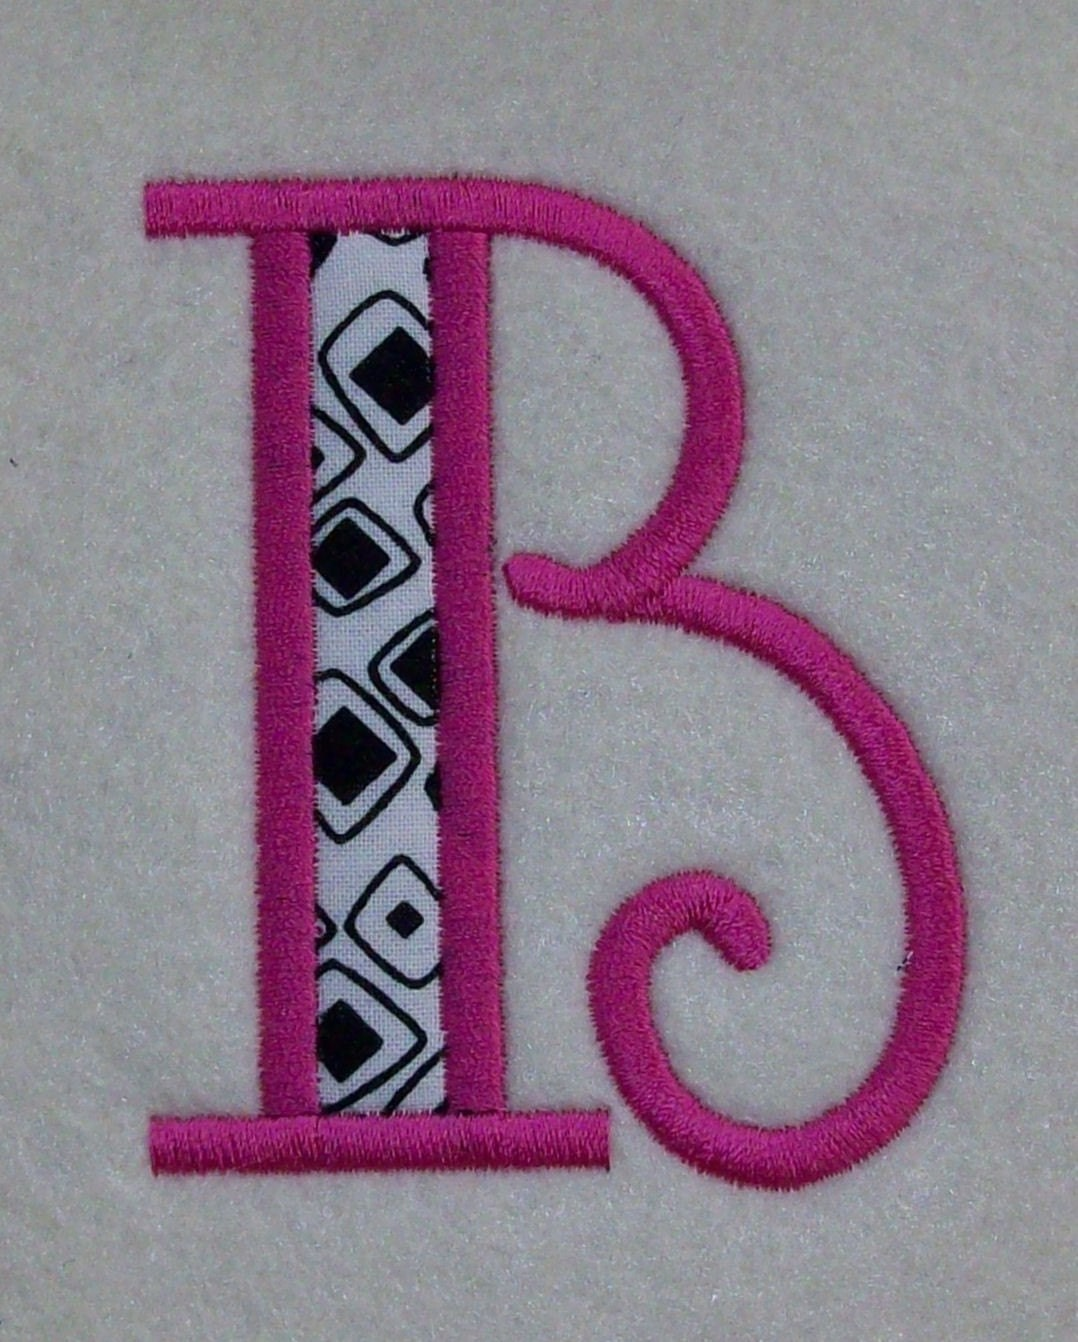 Embroidery machine applique alphabets fonts monogram set